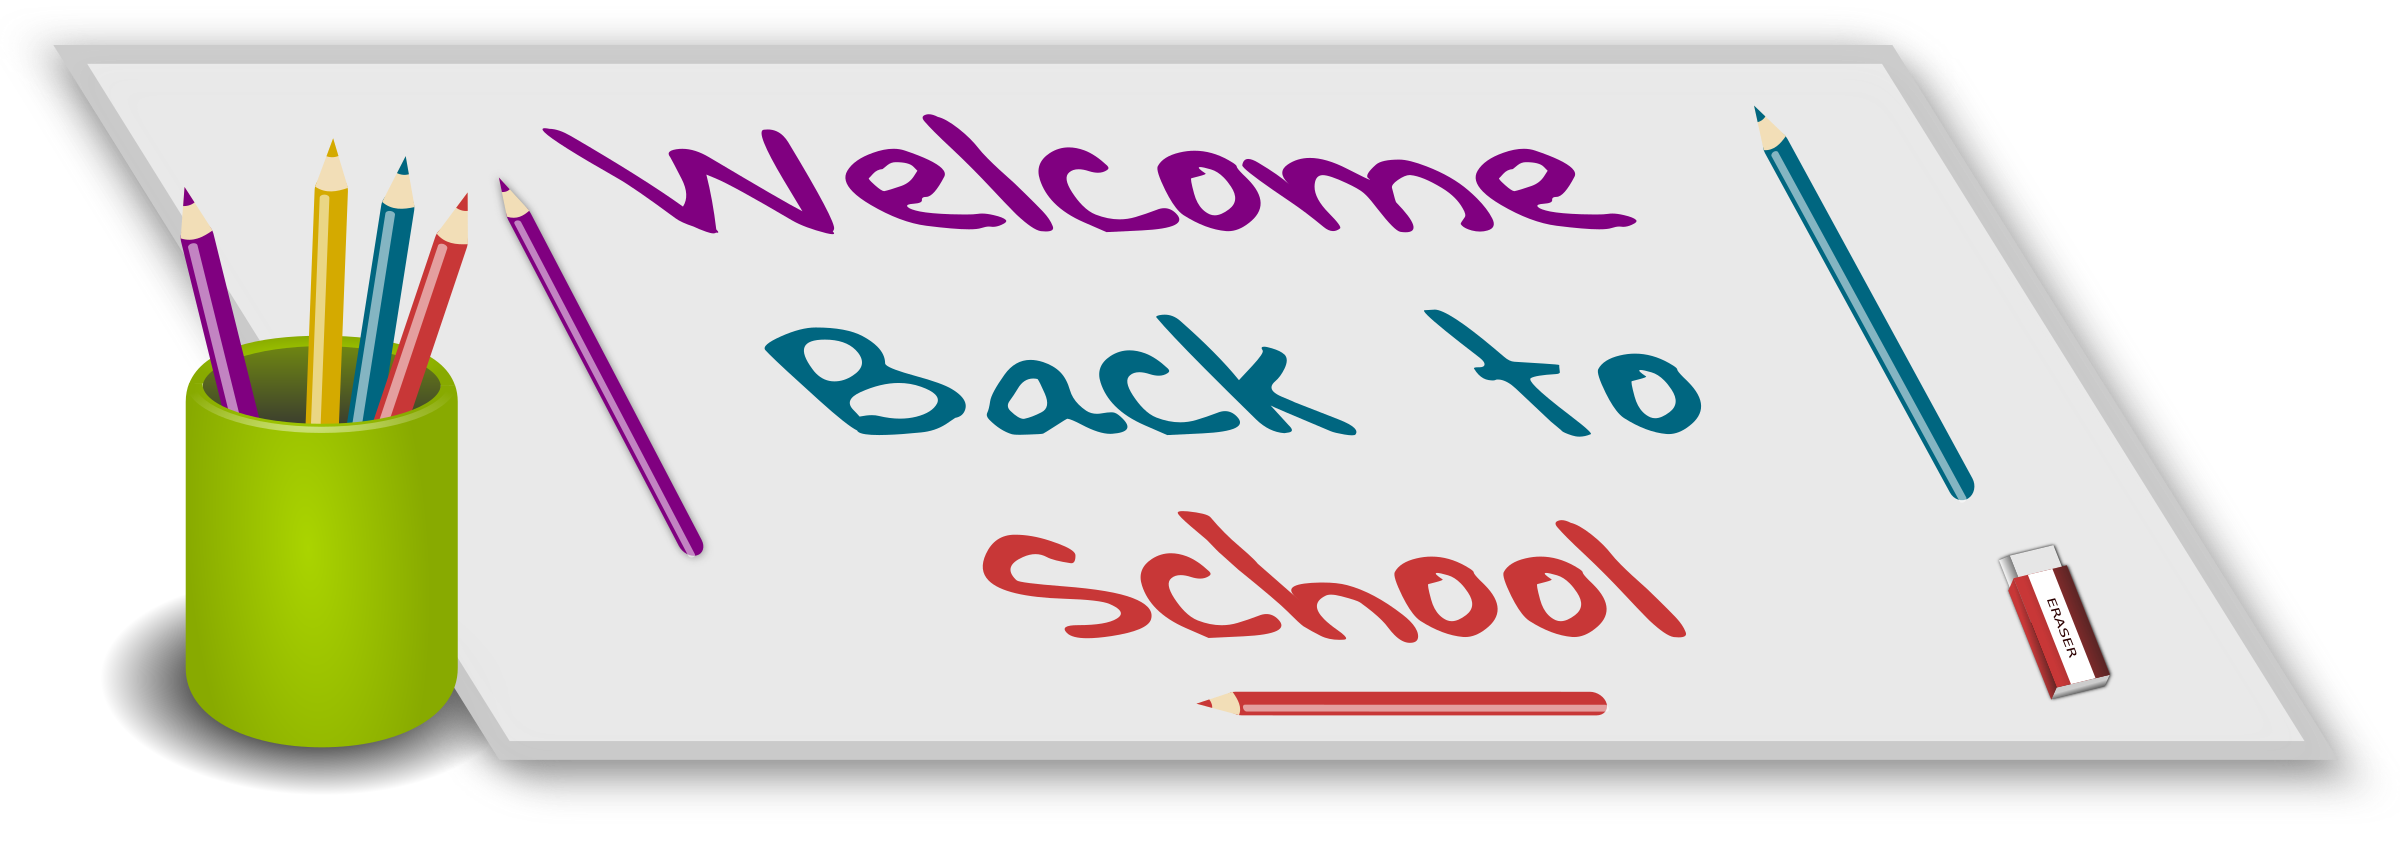 Clipart welcome to school jpg freeuse download Clipart - Welcome Back to school jpg freeuse download